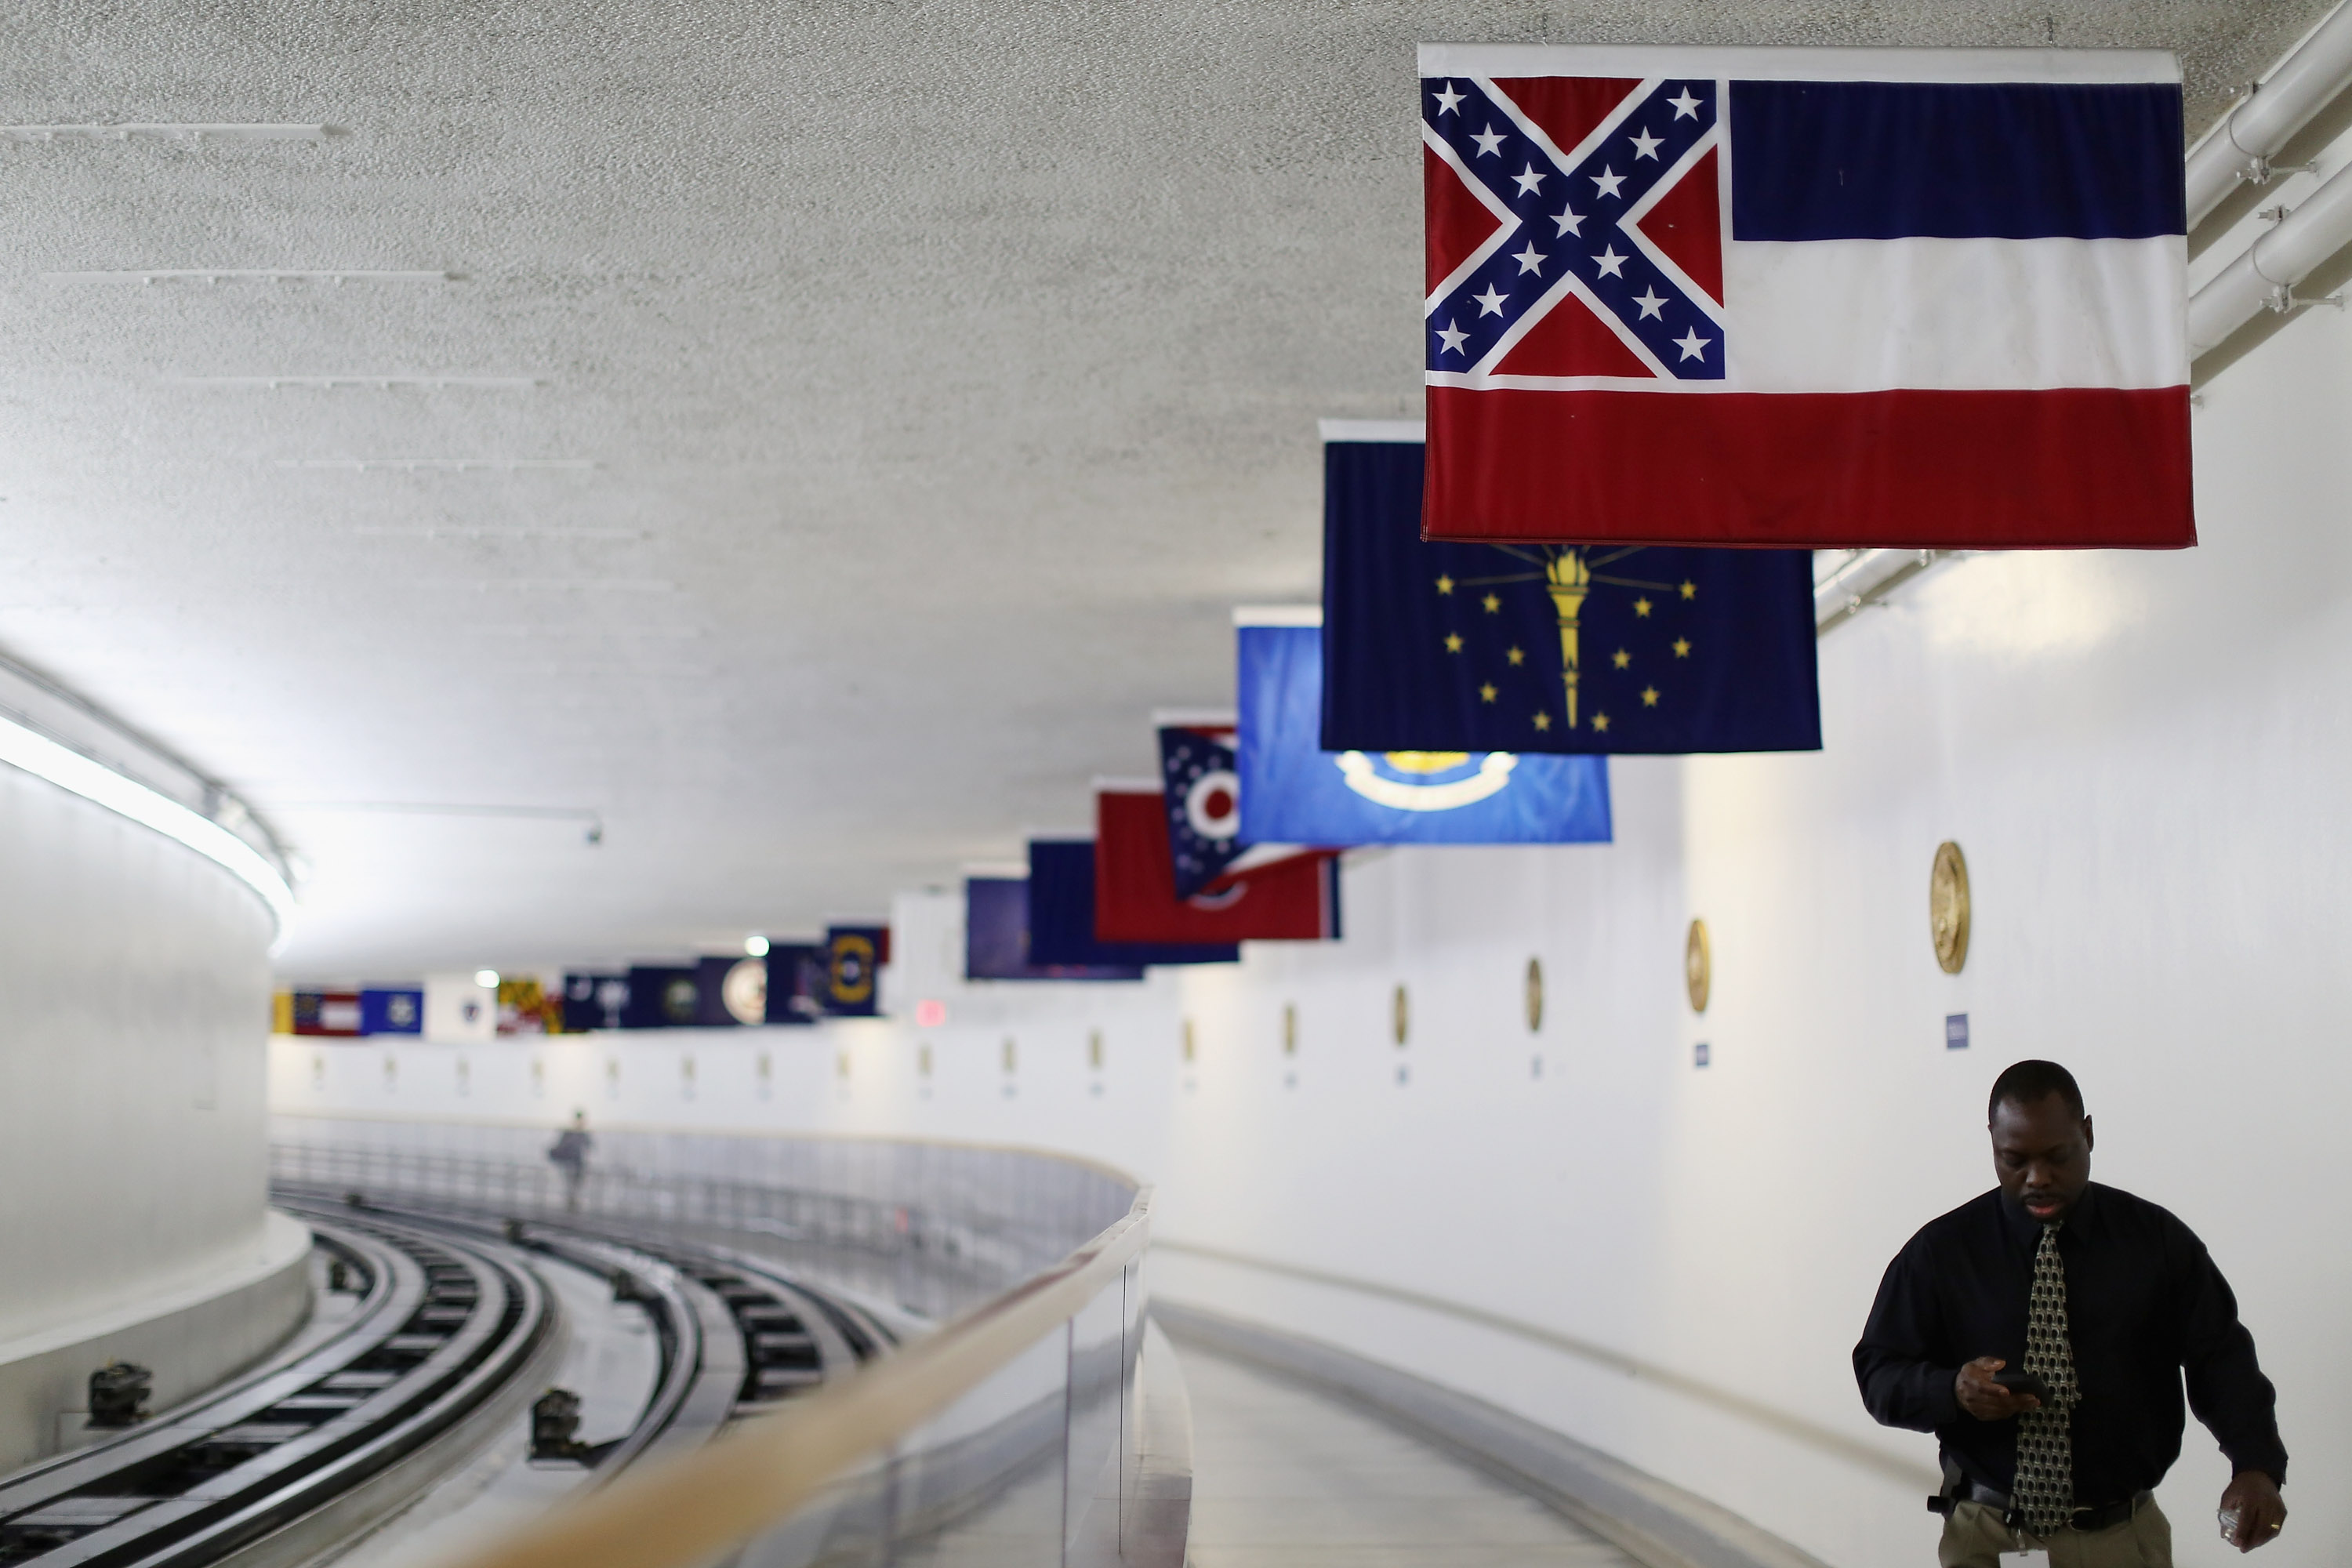 The state flag of Mississippi, which incorporates the flag of the Confederate States of America in the top left corner, is displayed with the flags of the other 49 states and territories in the tunnel connecting the senate office building and the U.S. Capitol June 23, 2015 in Washington, DC. (Photo by Chip Somodevilla/Getty Images)